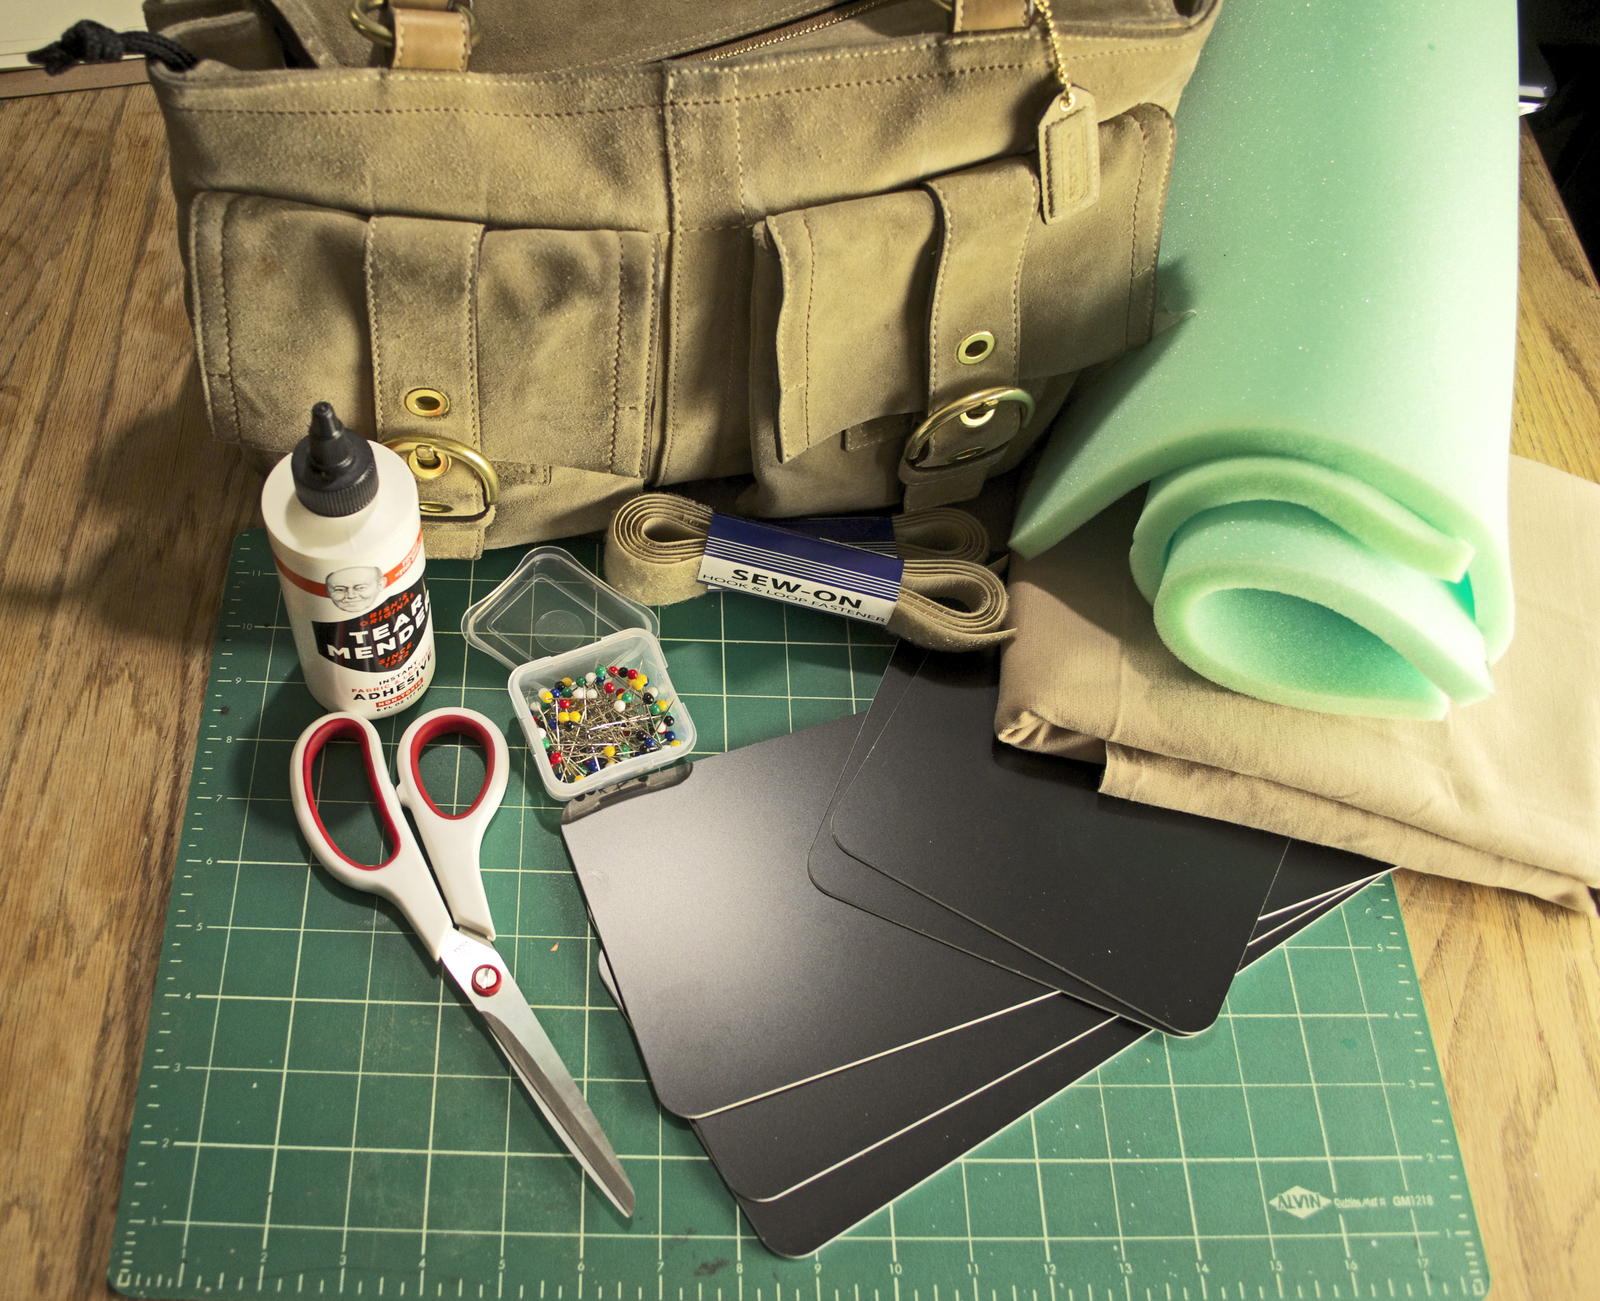 Diy Camera Bag · How To Make A Pouch, Purse Or Wallet · No ...